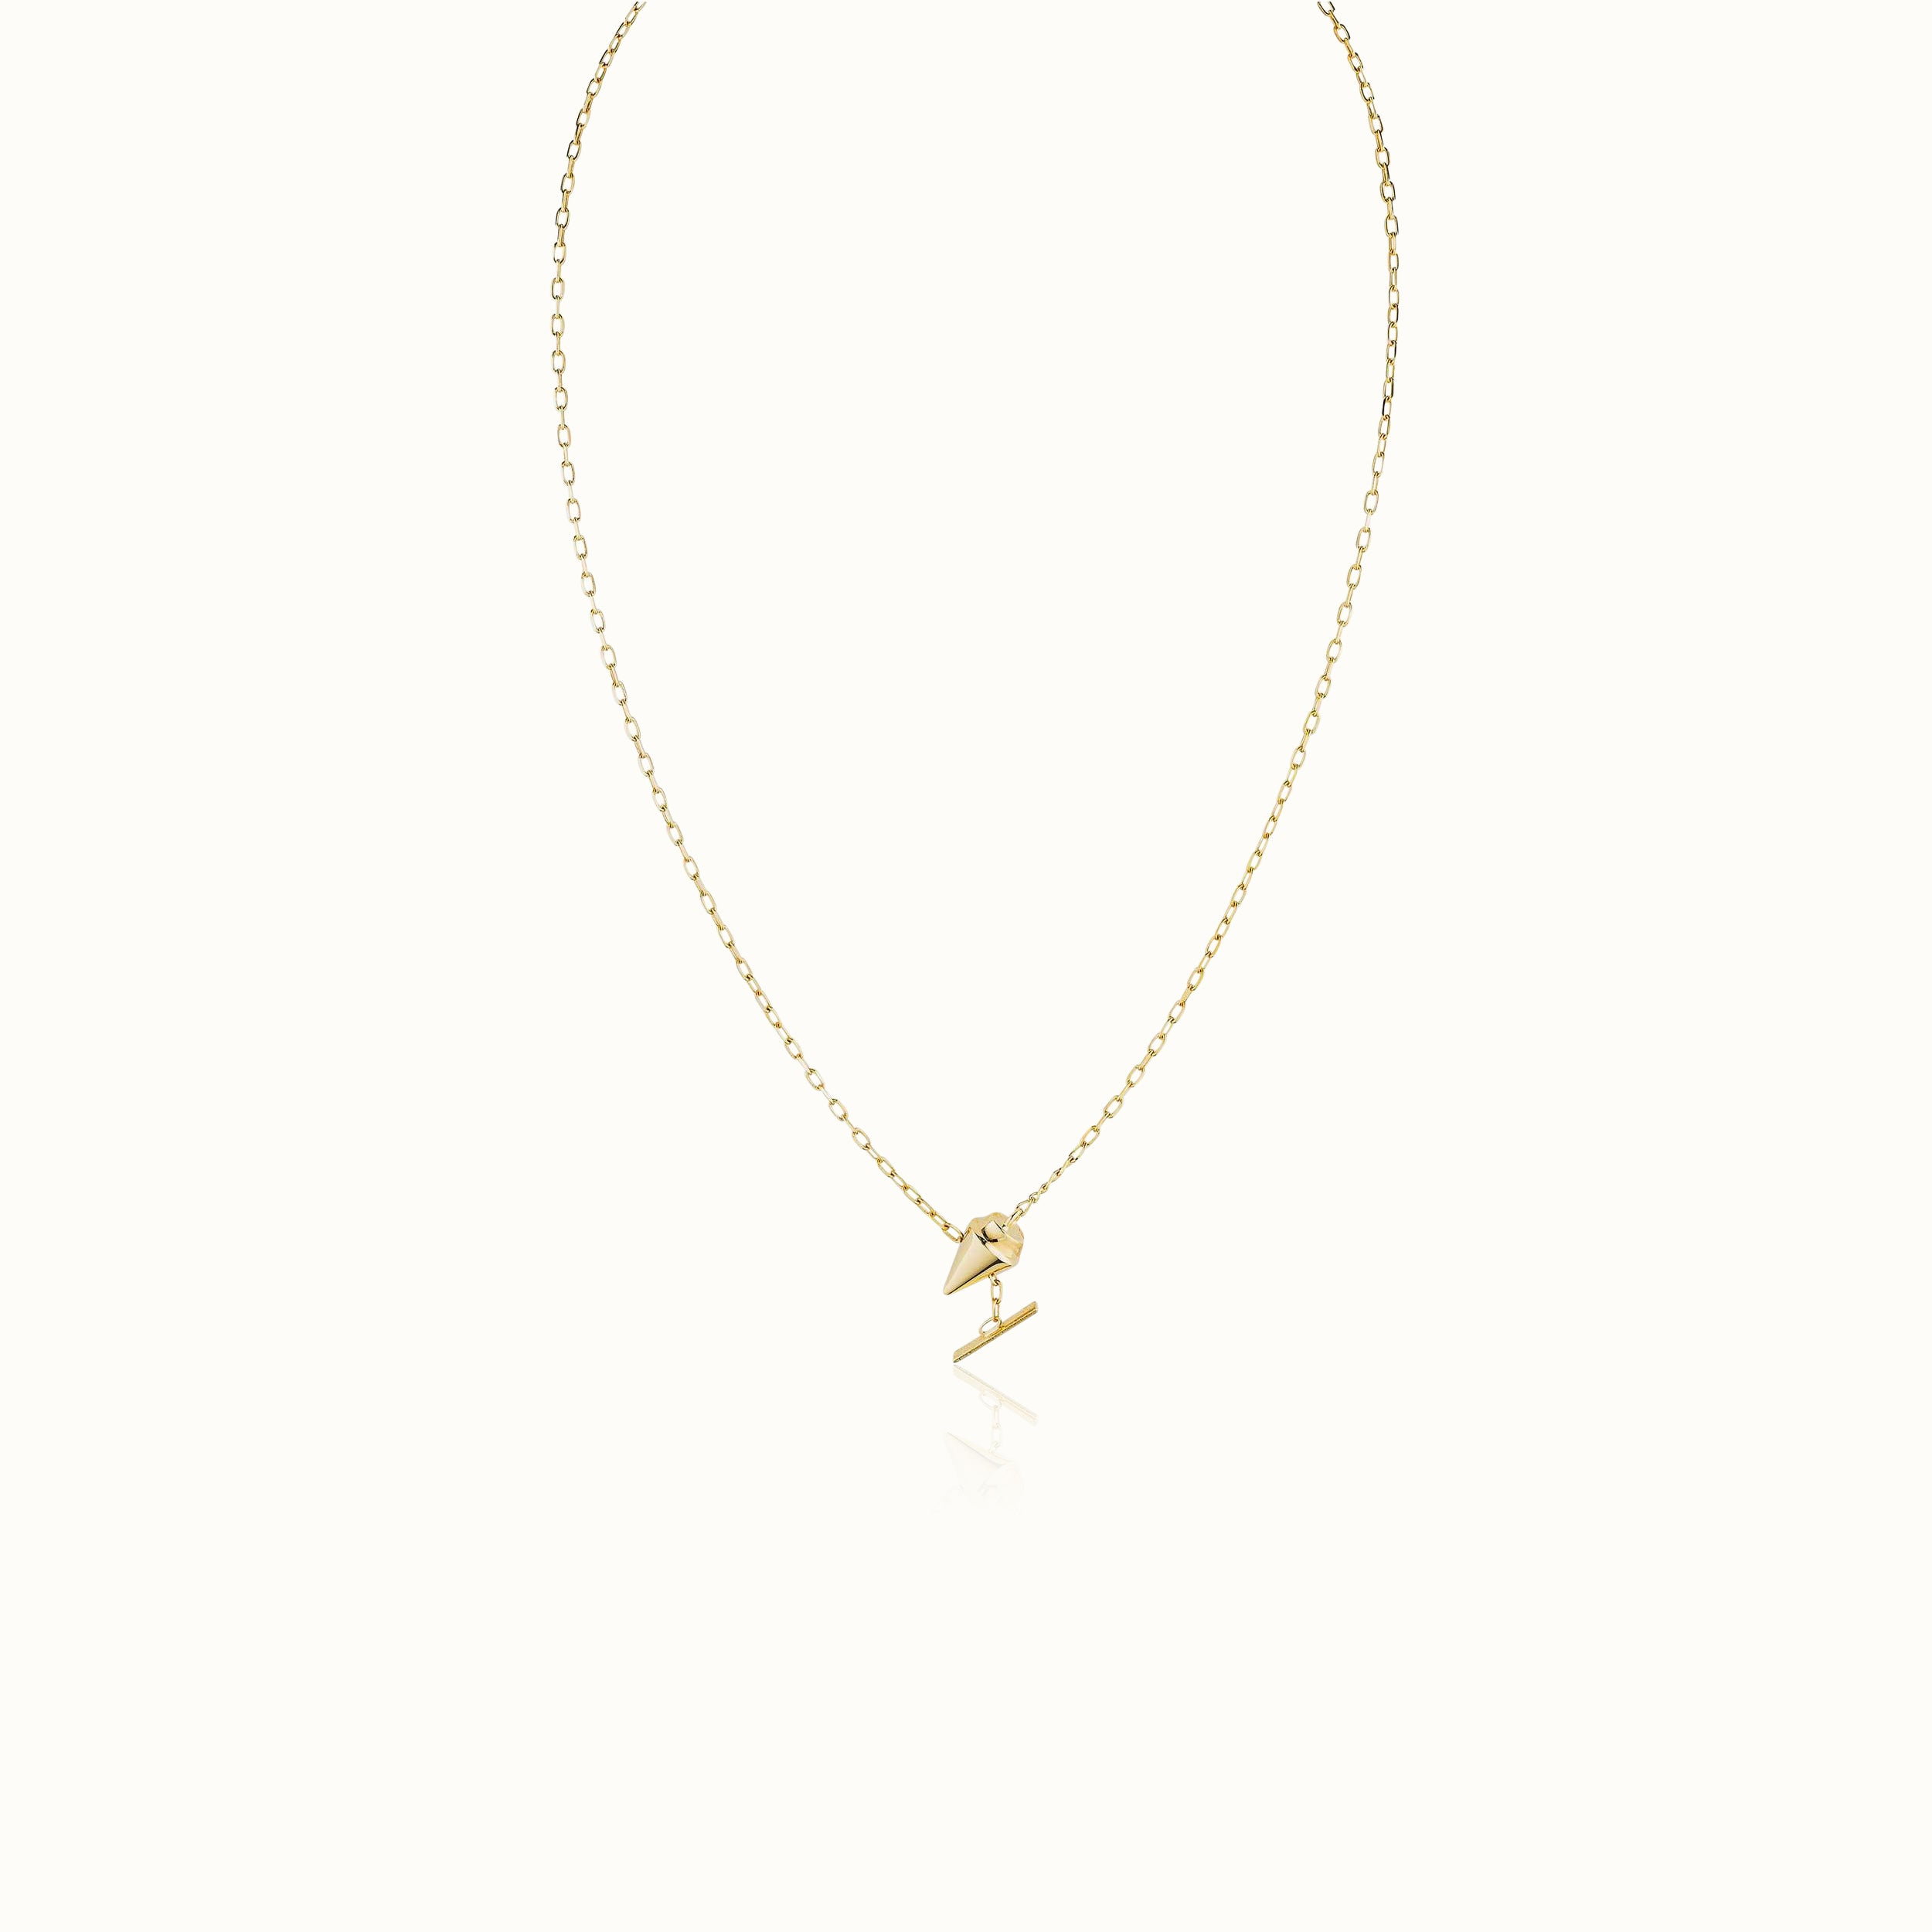 Delicati Titan Pendant Necklace